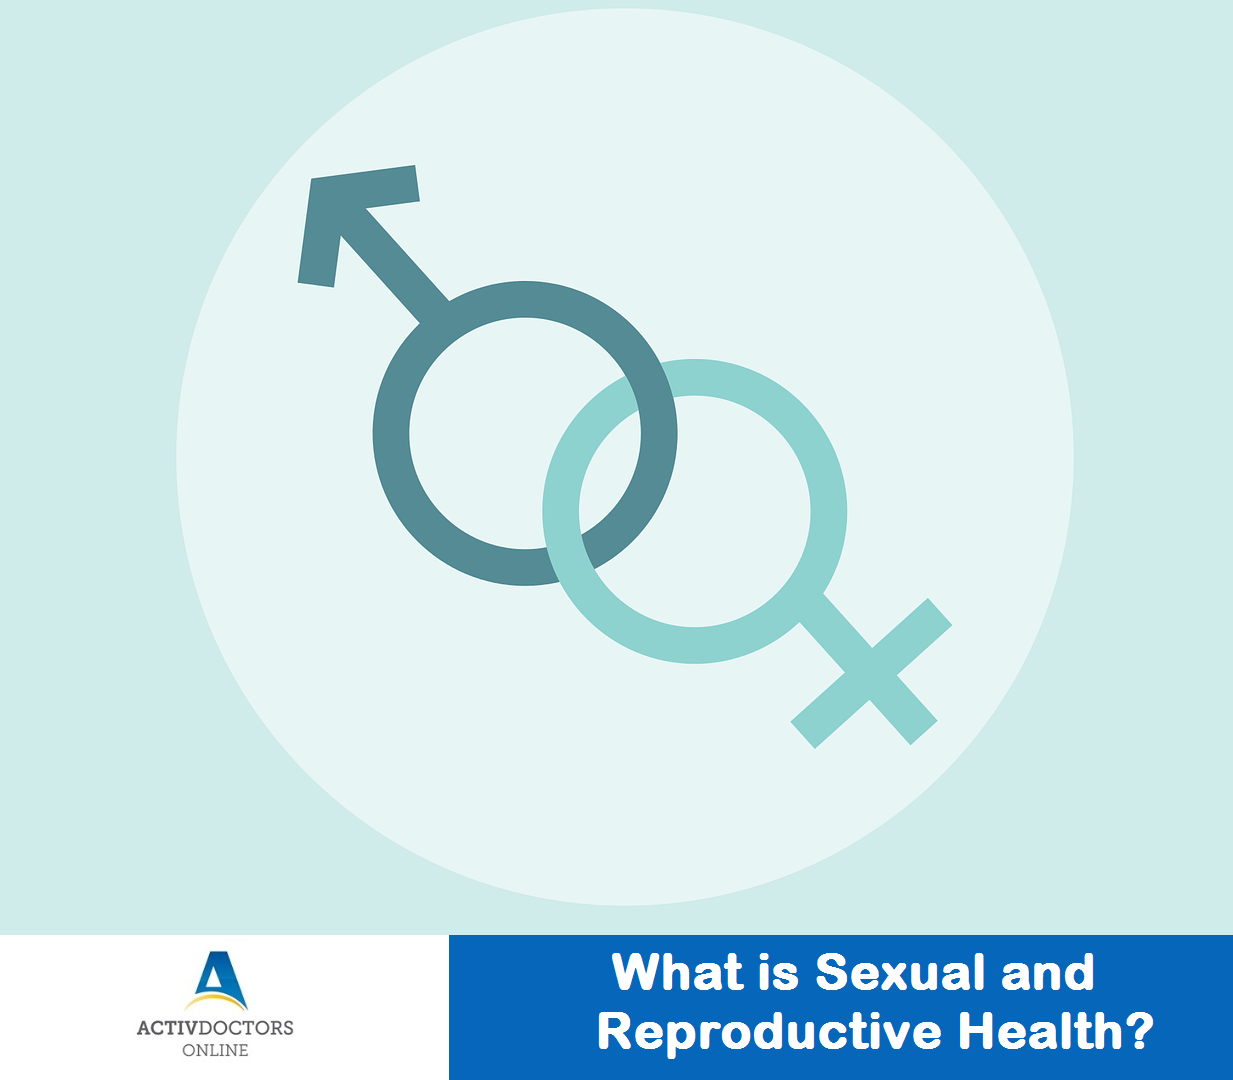 What is Sexual and Reproductive Health?